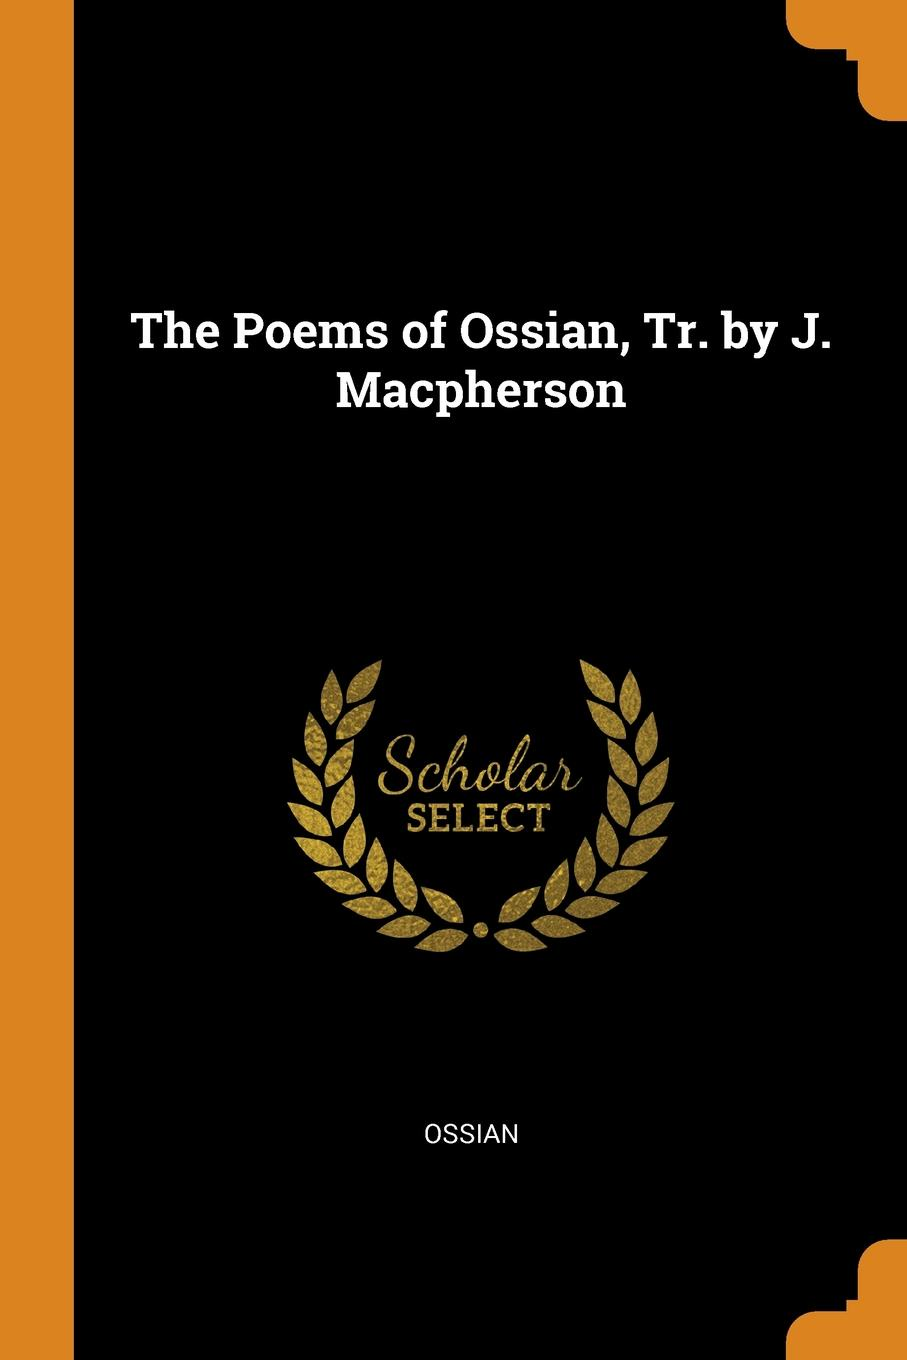 Ossian The Poems of Ossian, Tr. by J. Macpherson j macpherson temora an ancient epic poem in eight books together with several other poems composed by ossian the son of fingal translated from the galic language by james macpherson